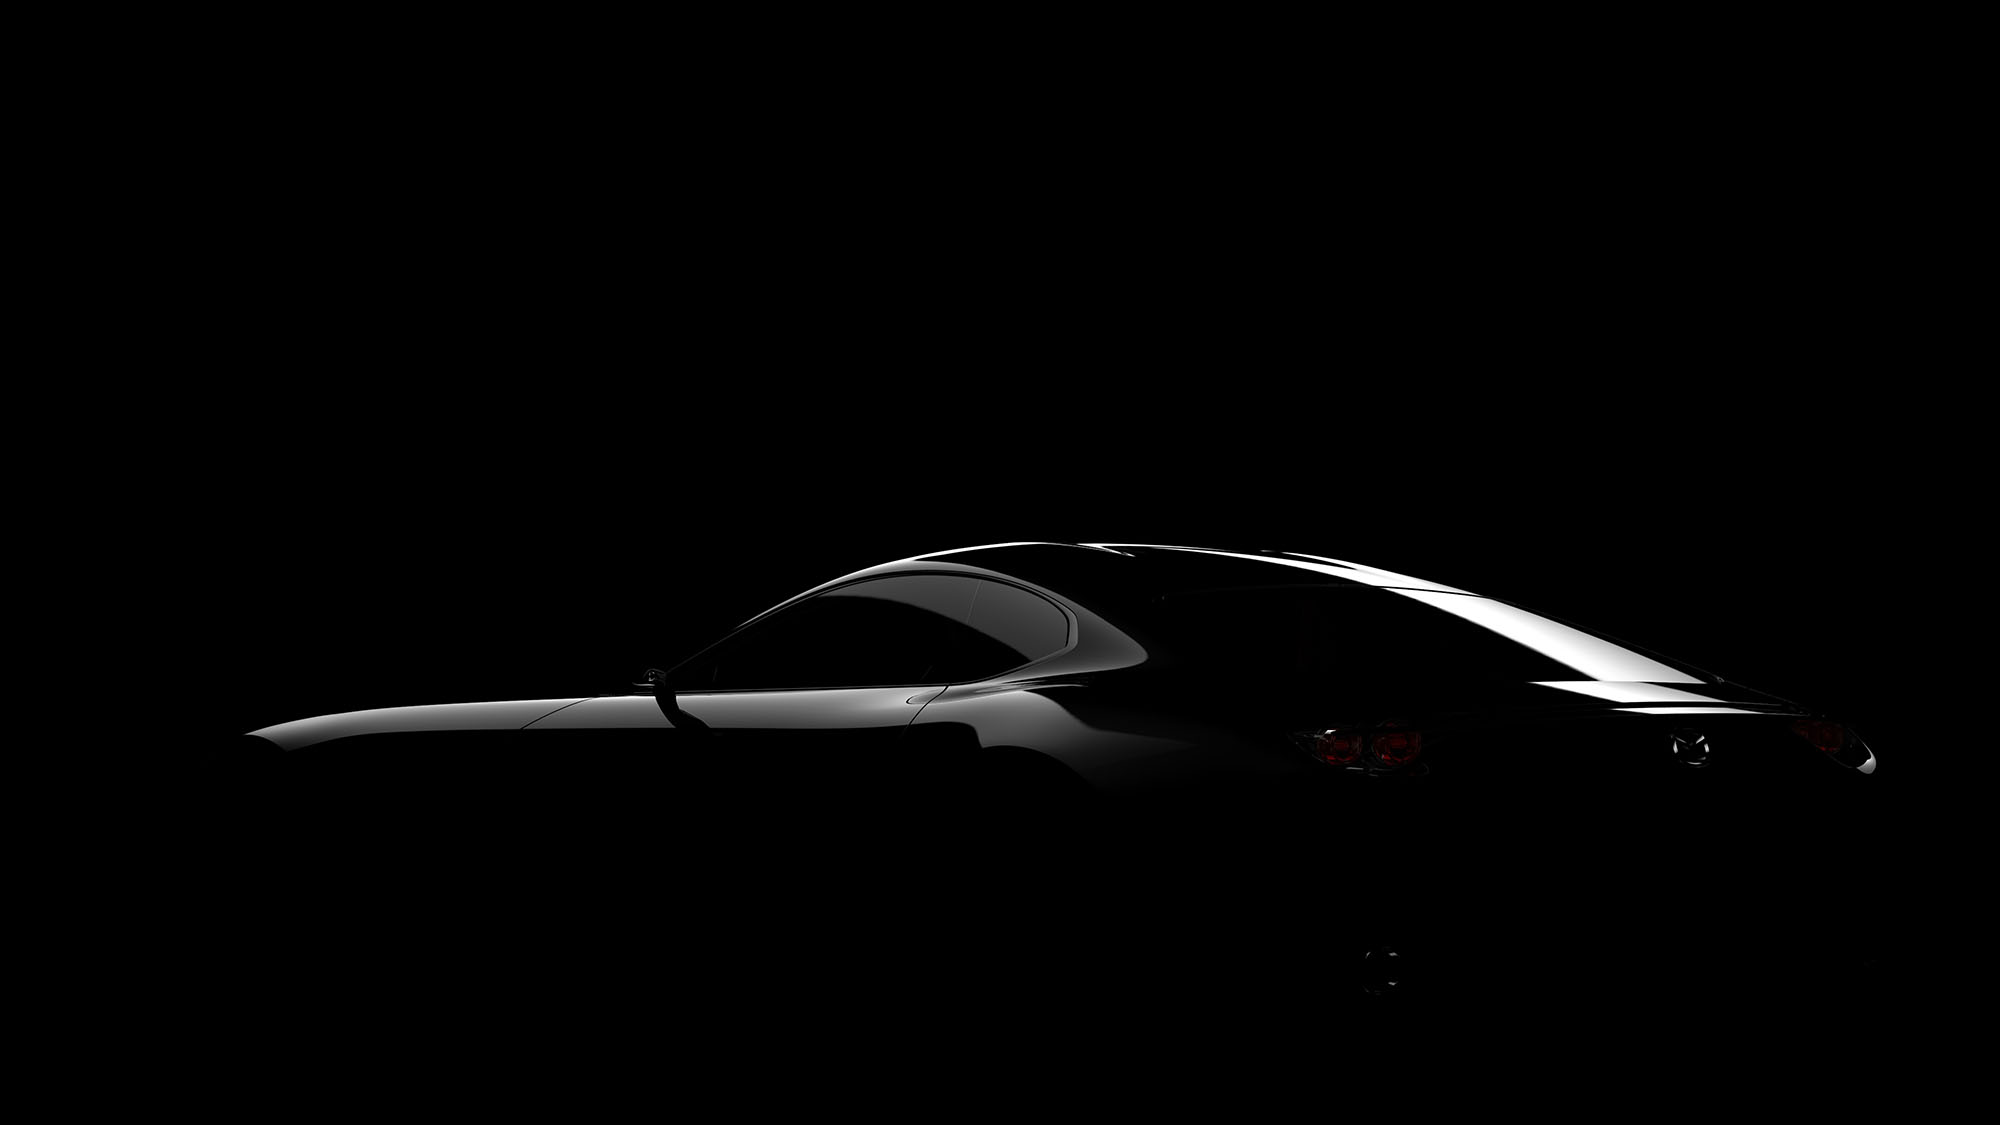 Mazda's new sports car concept (CNW Group/Mazda Canada Inc.)